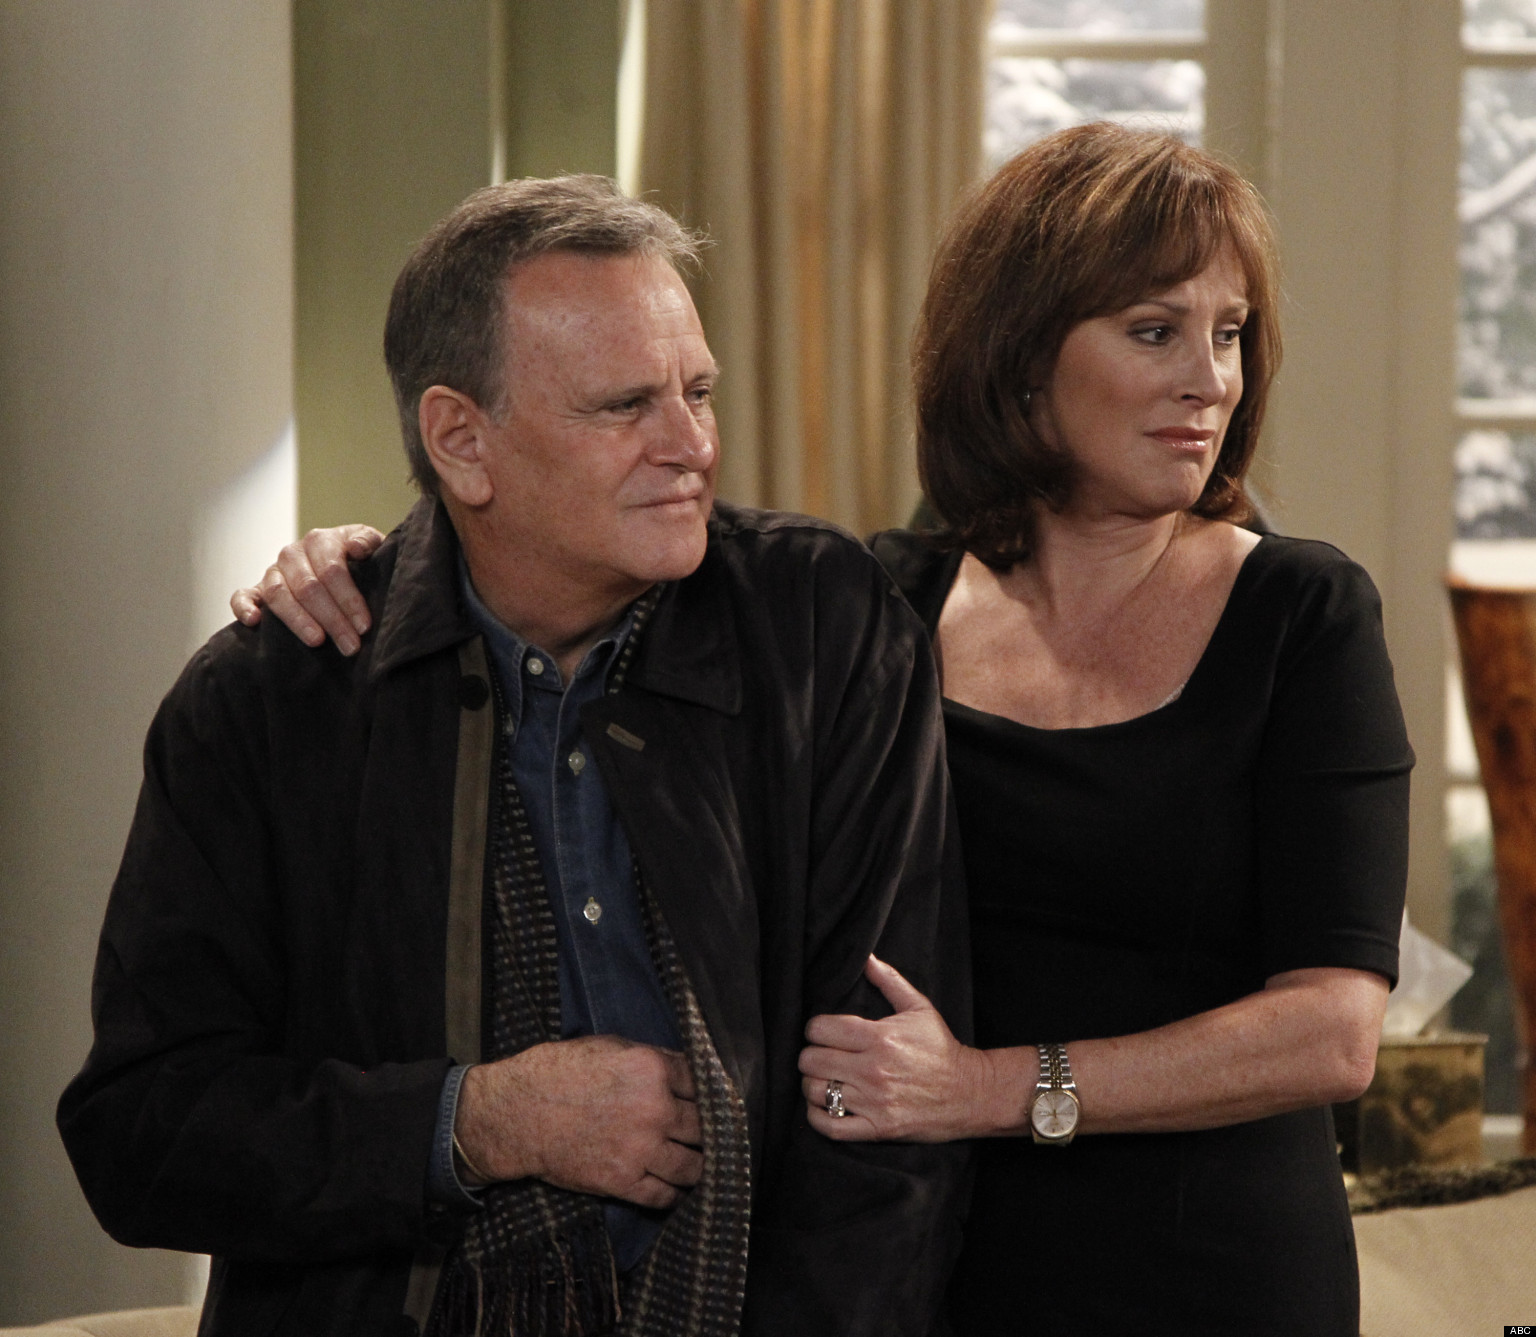 General hospital cast members leaving - Photo Credit Oltl Abc Image Acquired From Abc Press